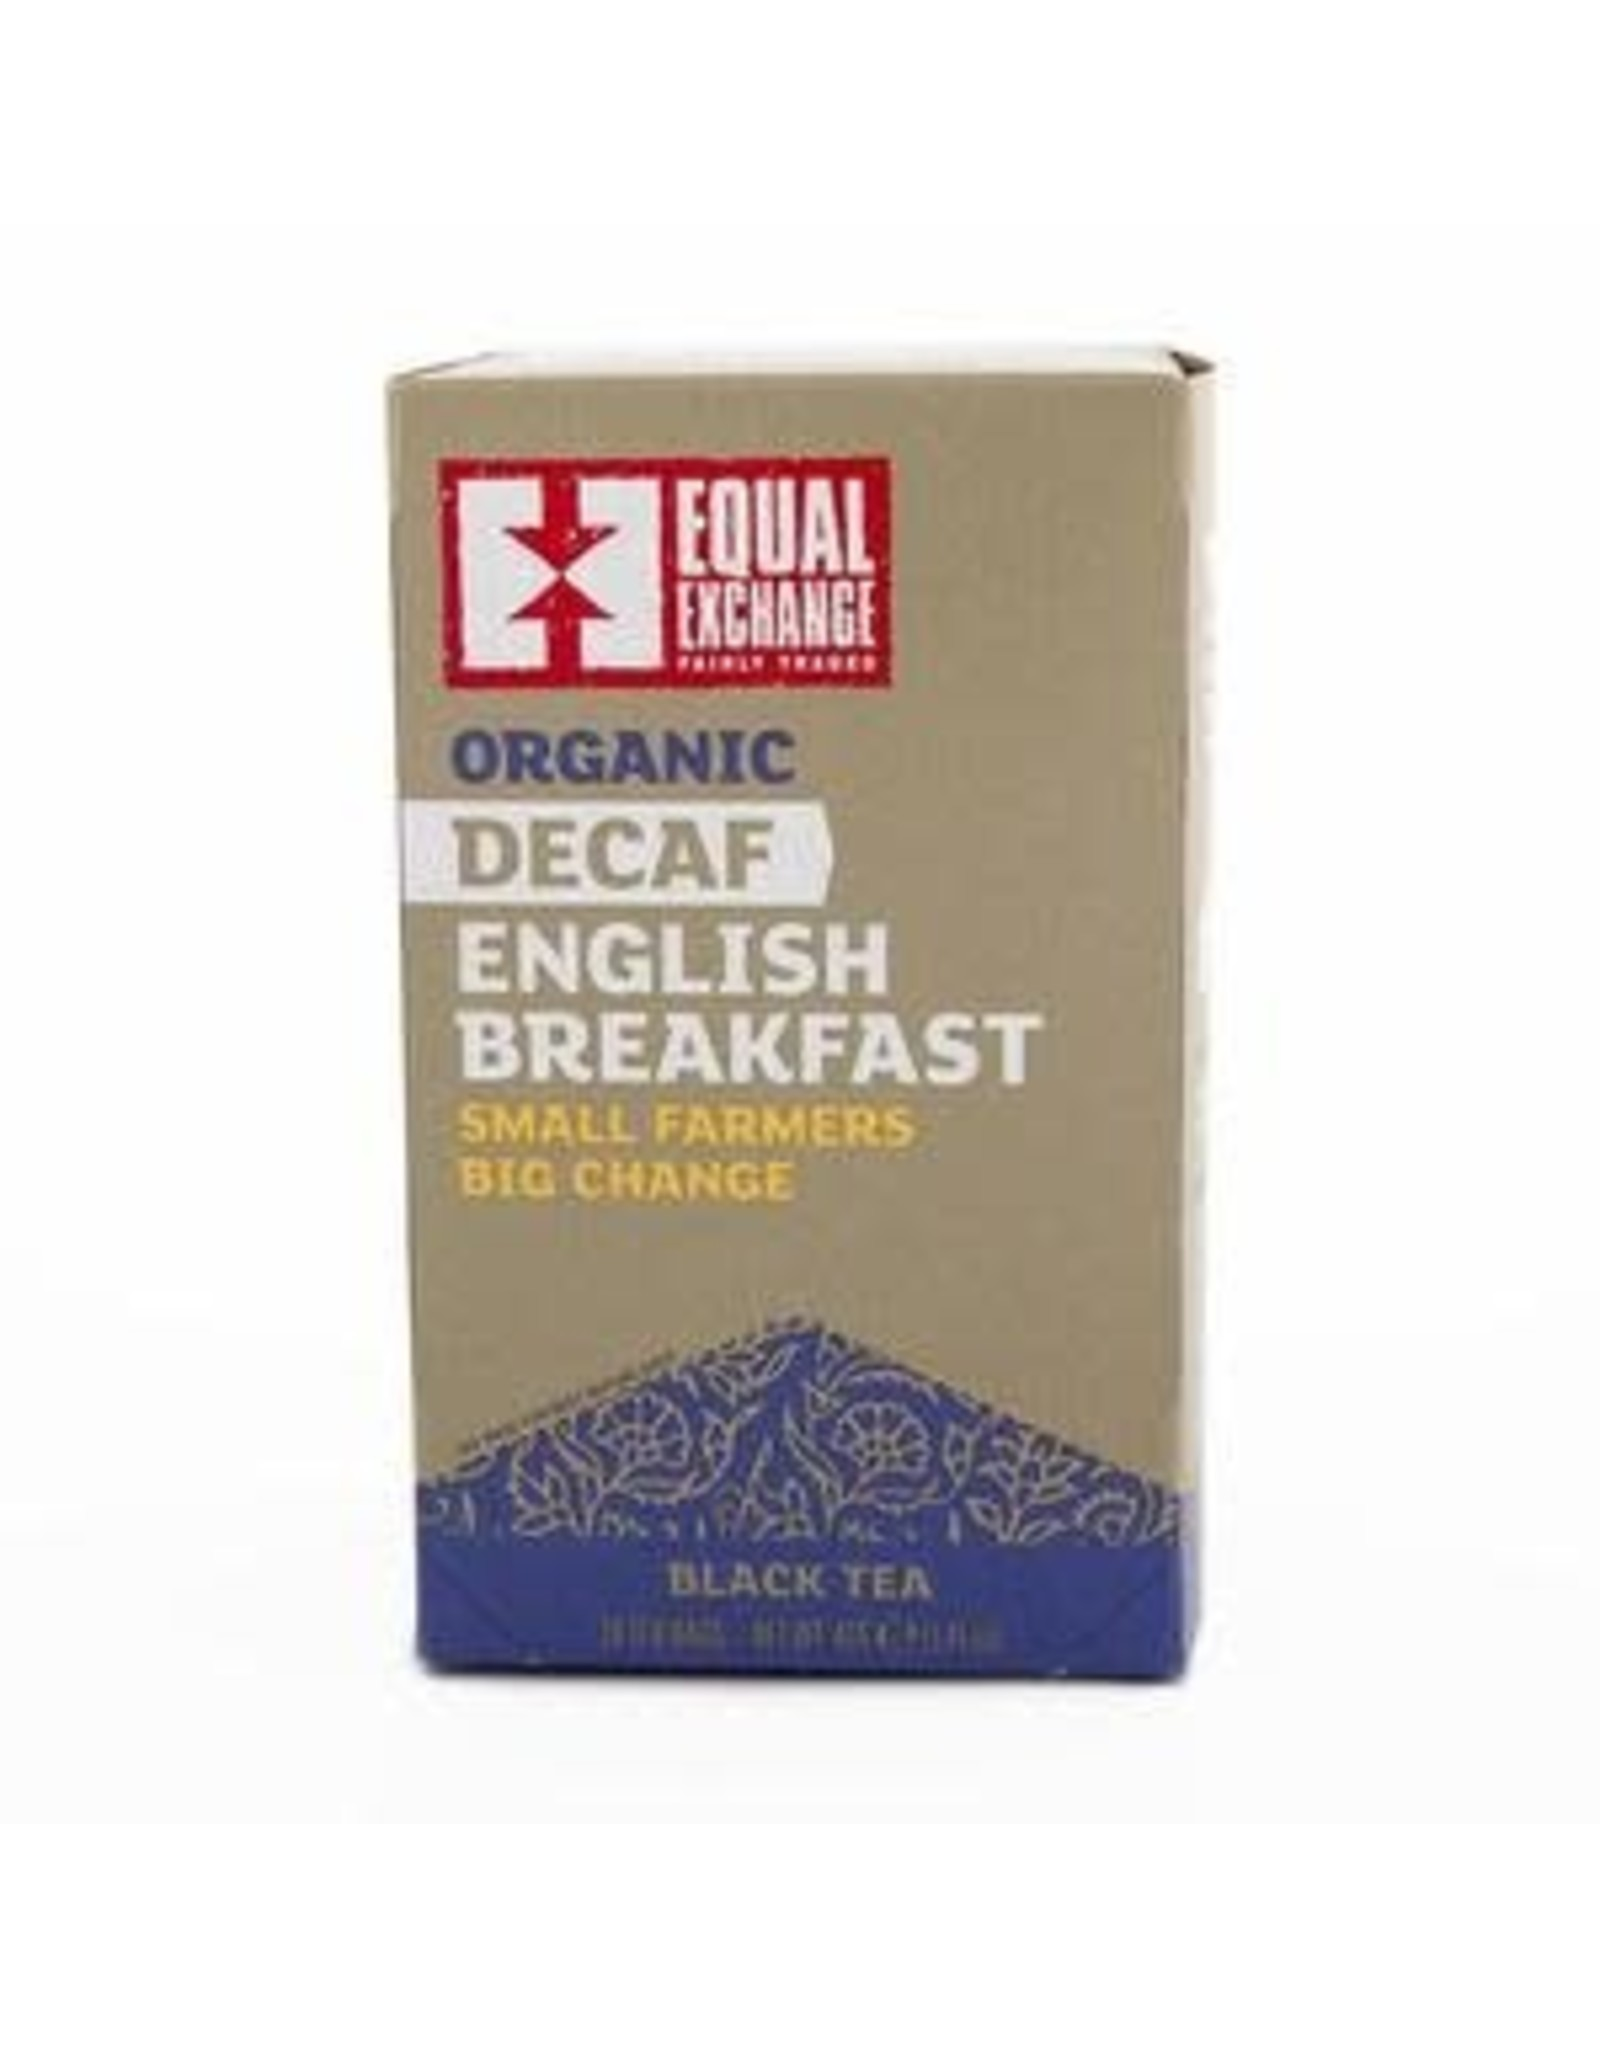 Organic English Breakfast, Decaf